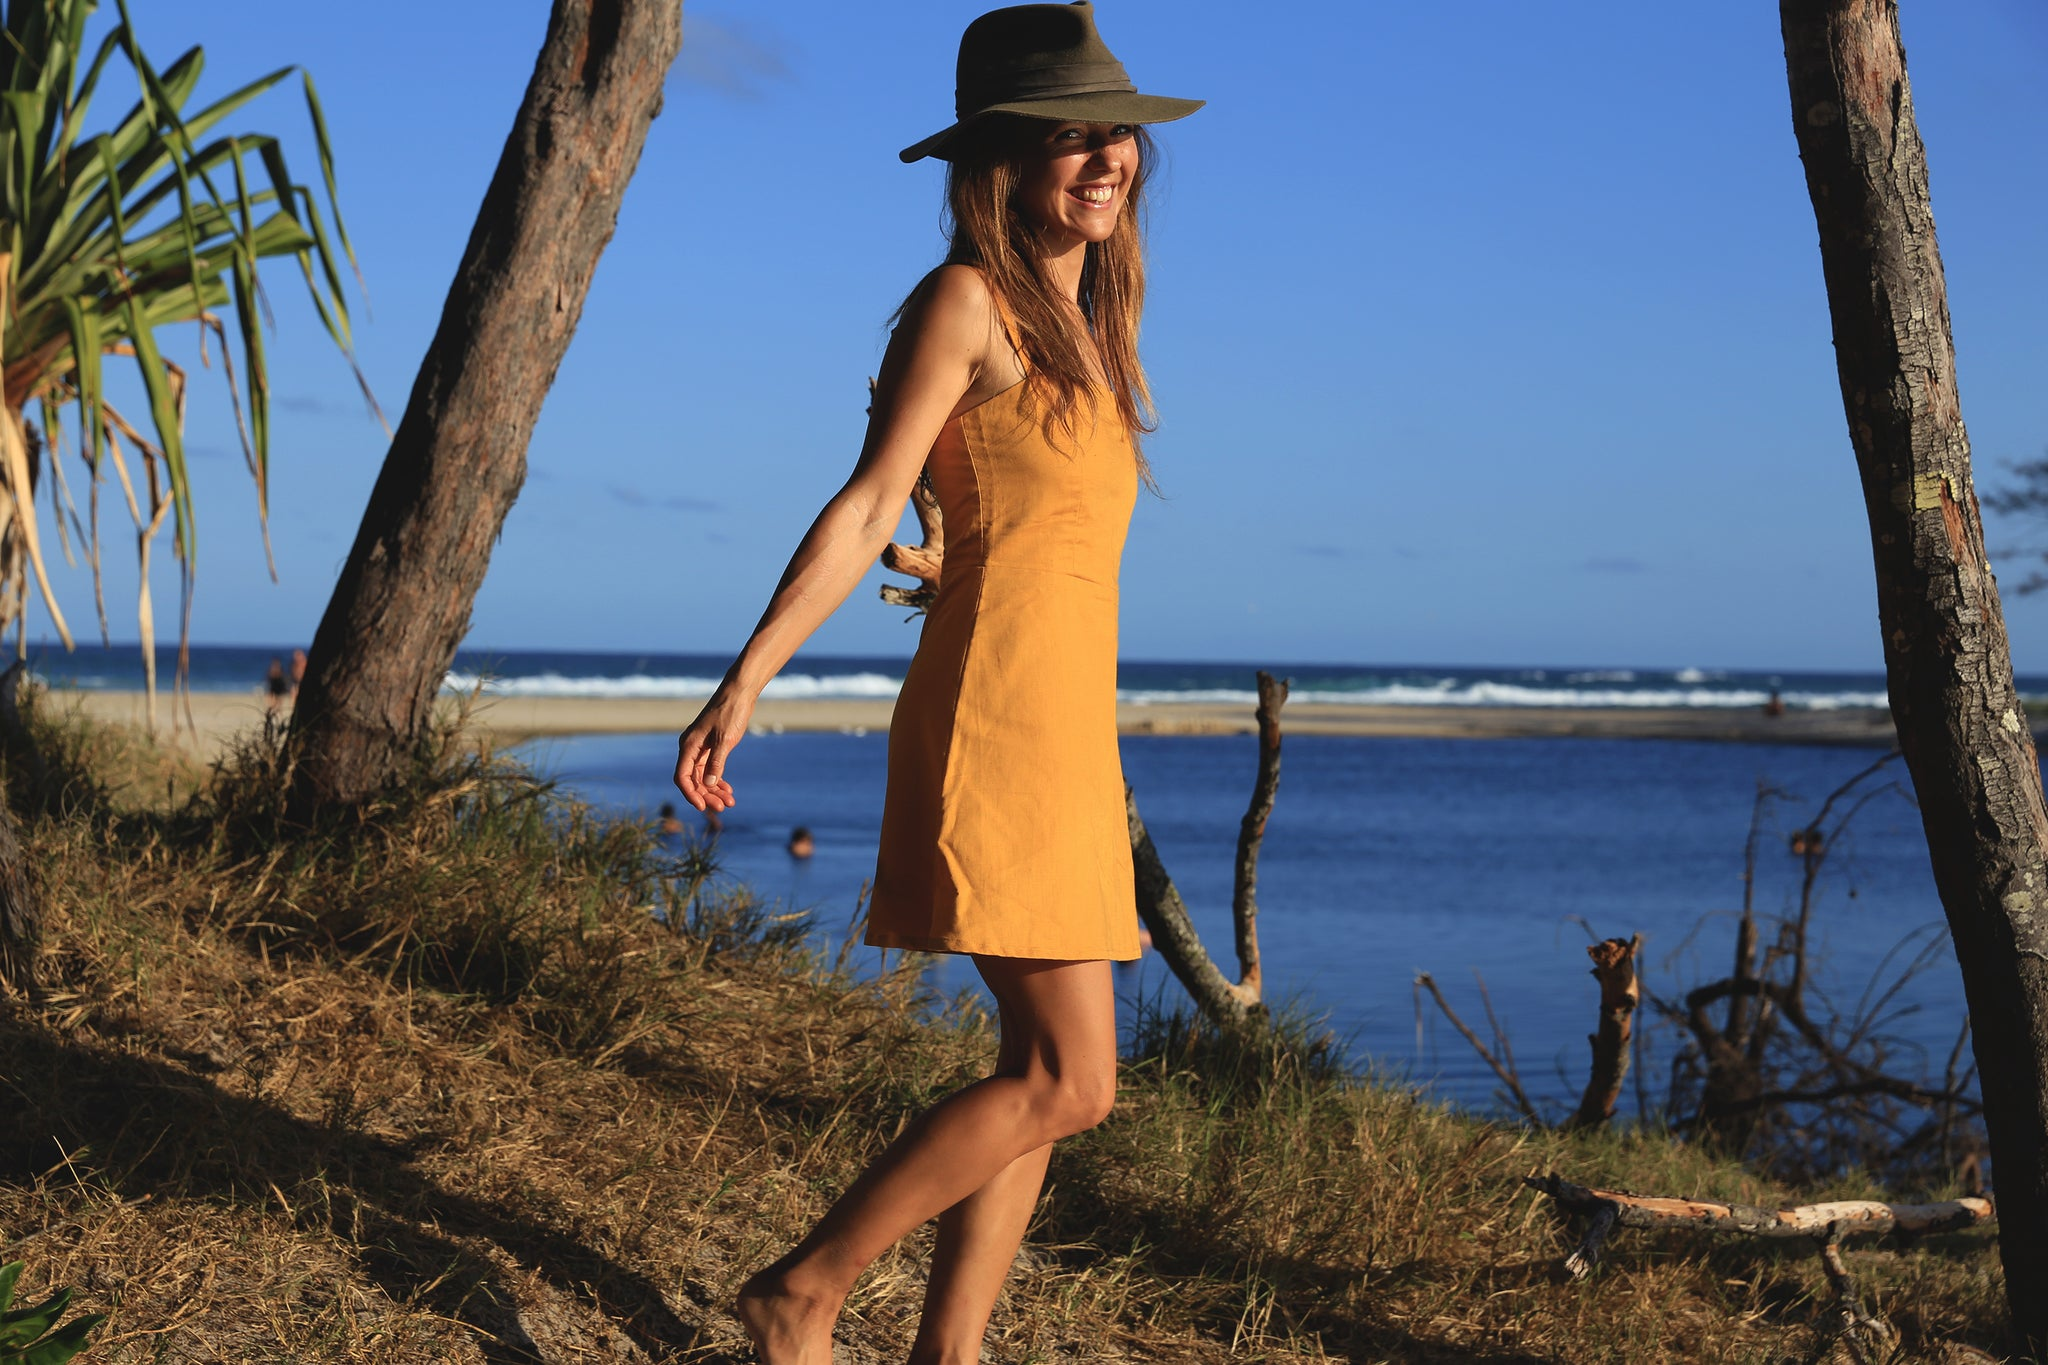 Catherine linen Sunflower dress